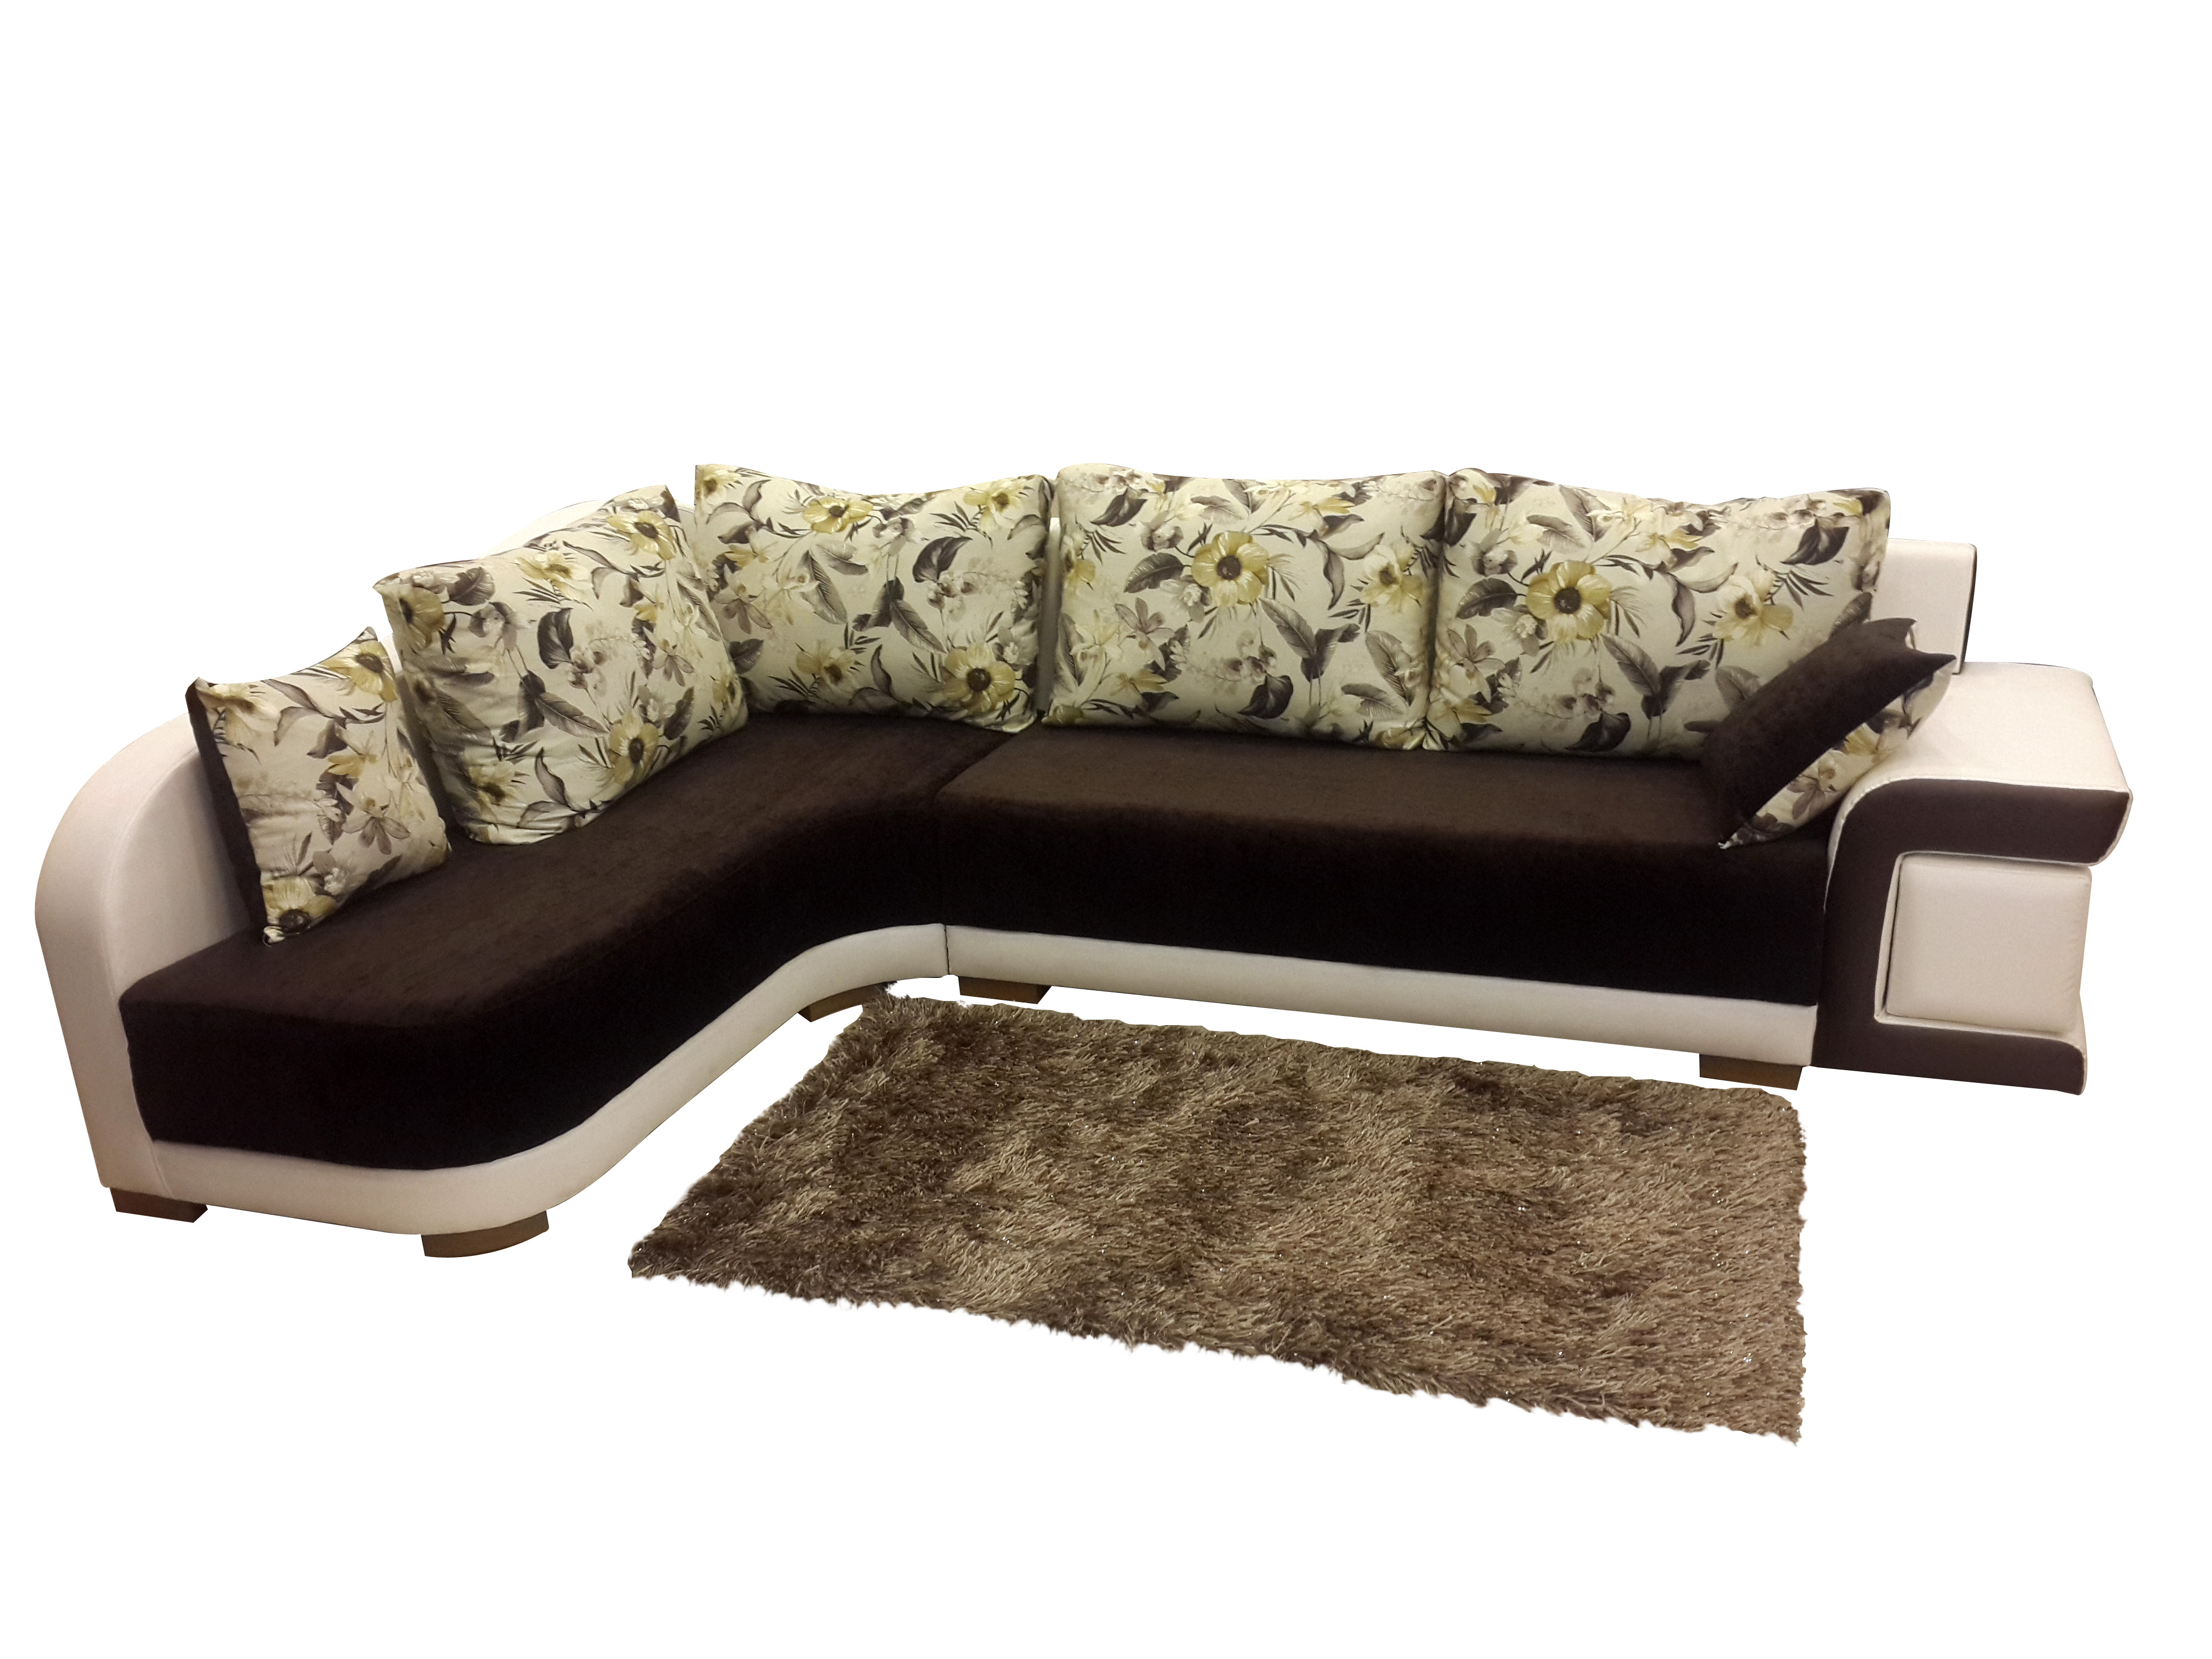 Sofa Set Offers In Mumbai Sofa Set Designs In Mumbai Best Sofa Prices Online